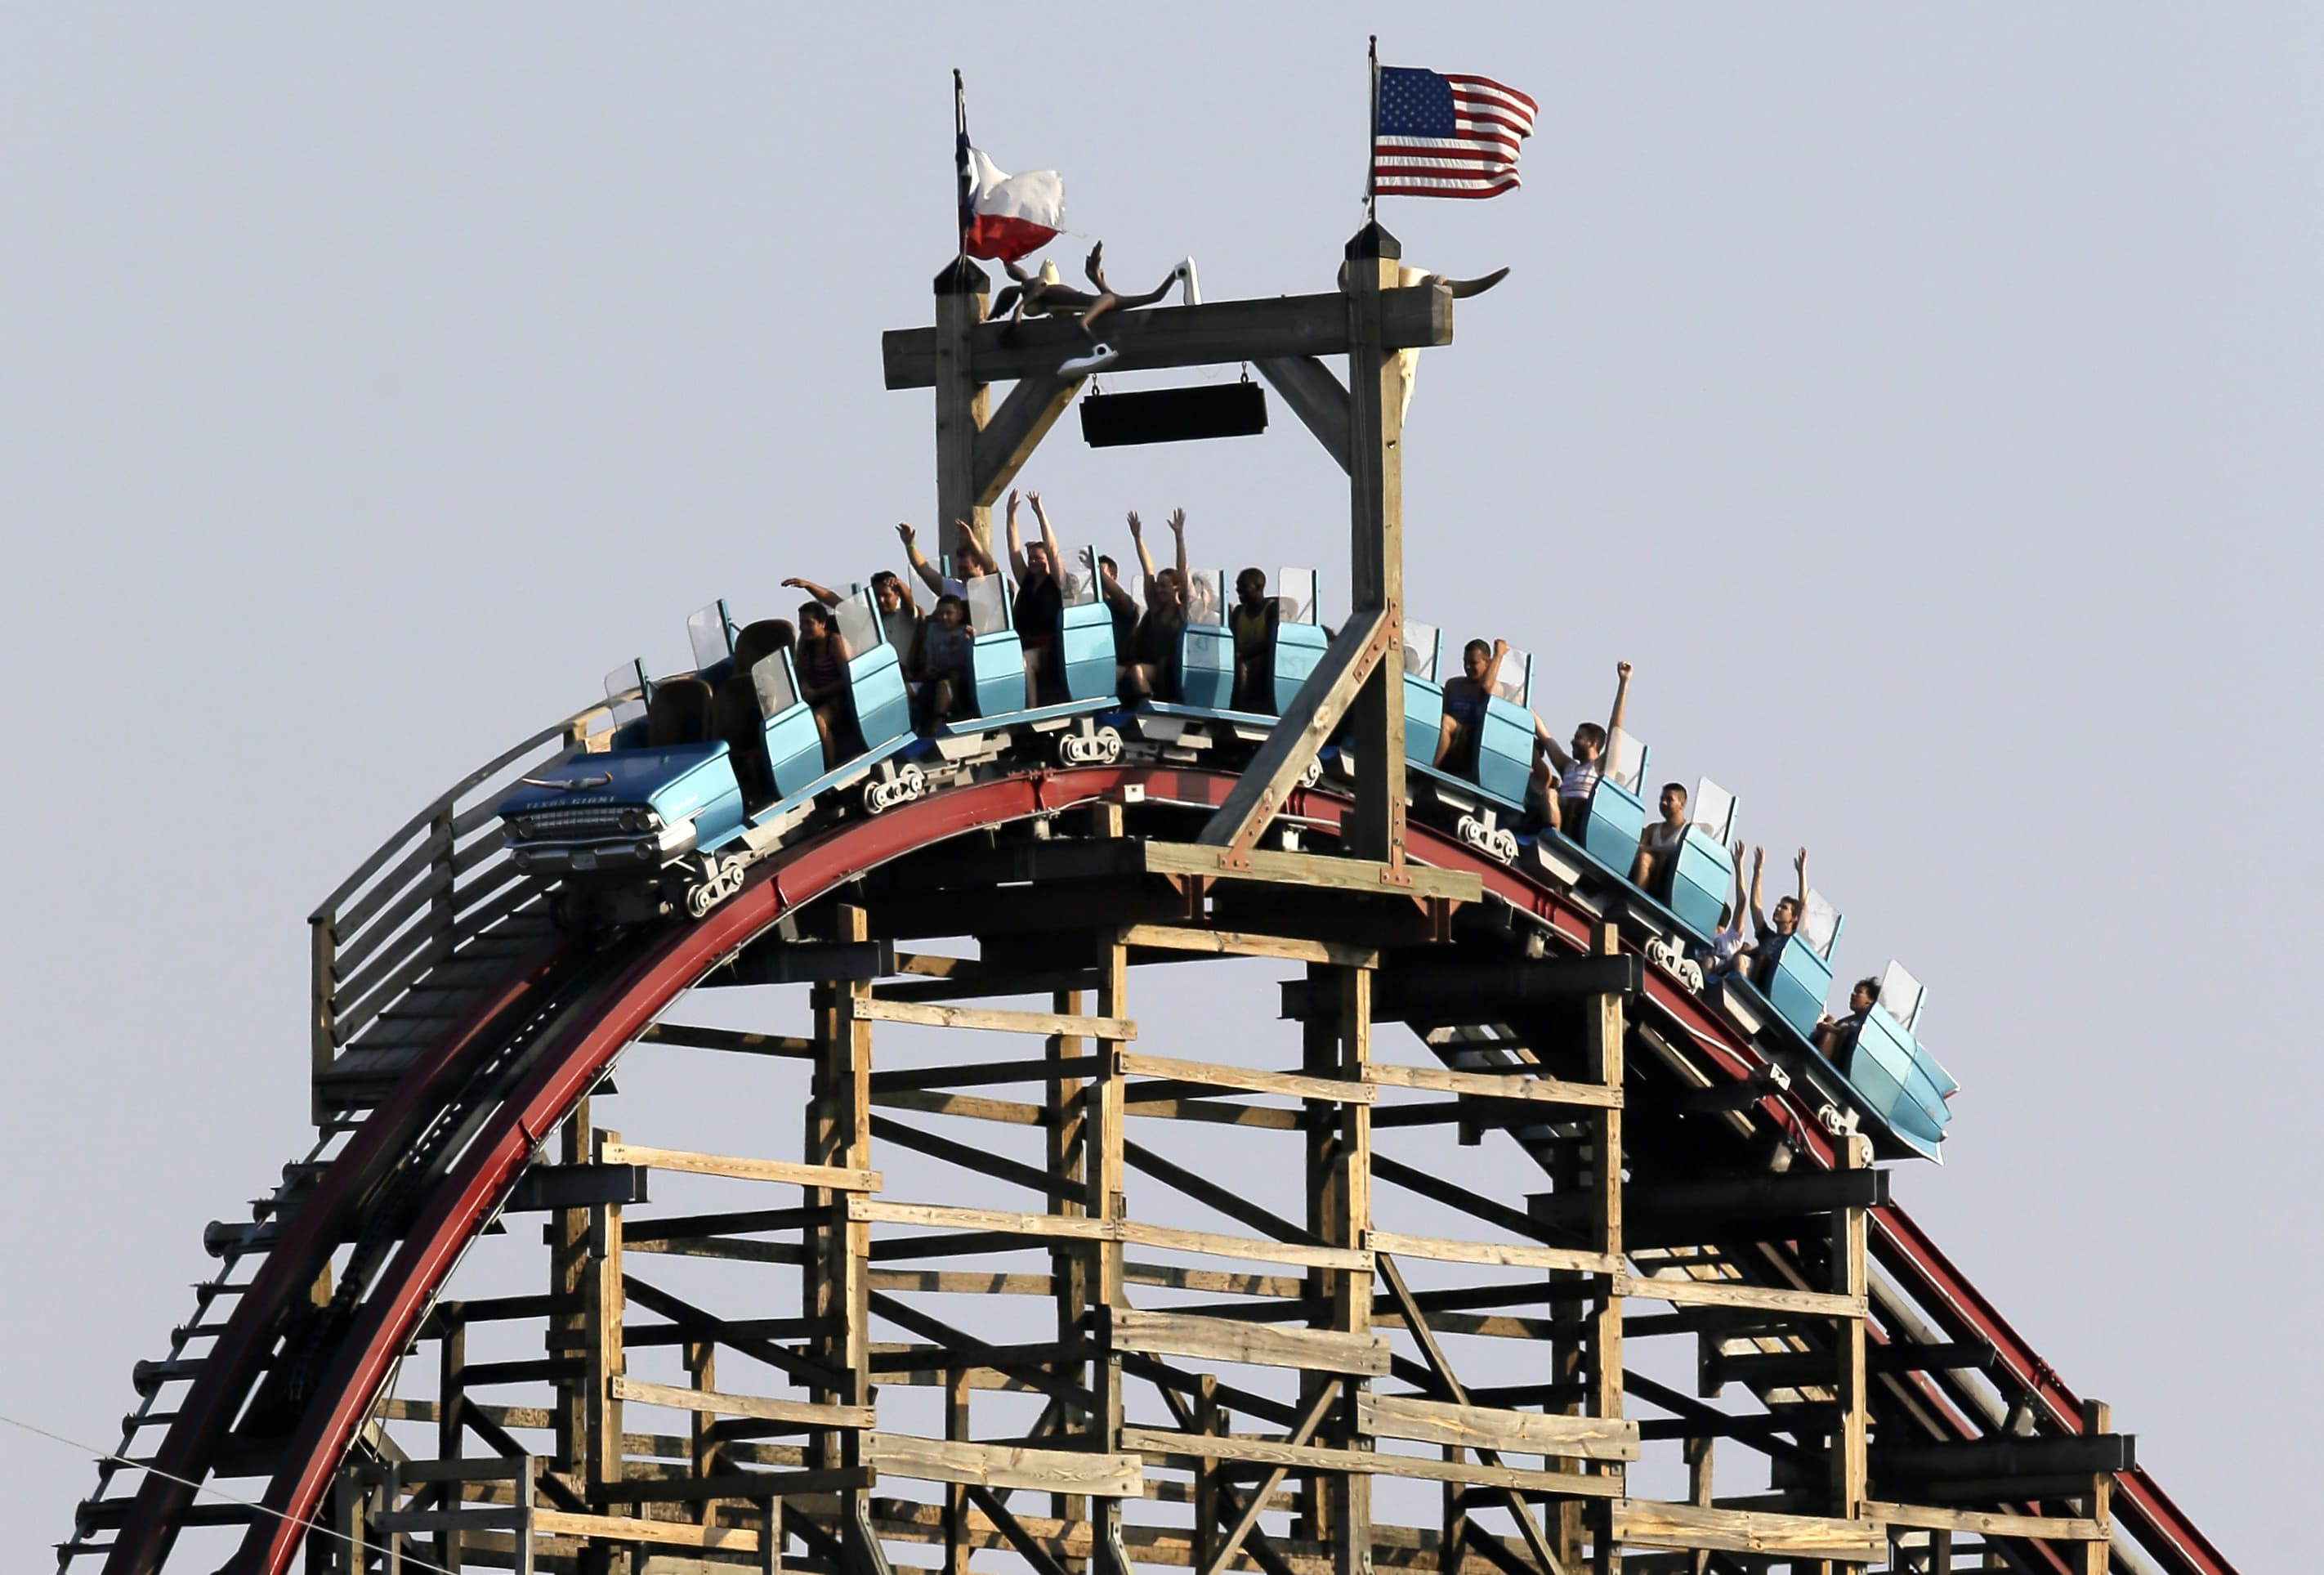 Six Flags Over Texas denies liability for roller-coaster accident death